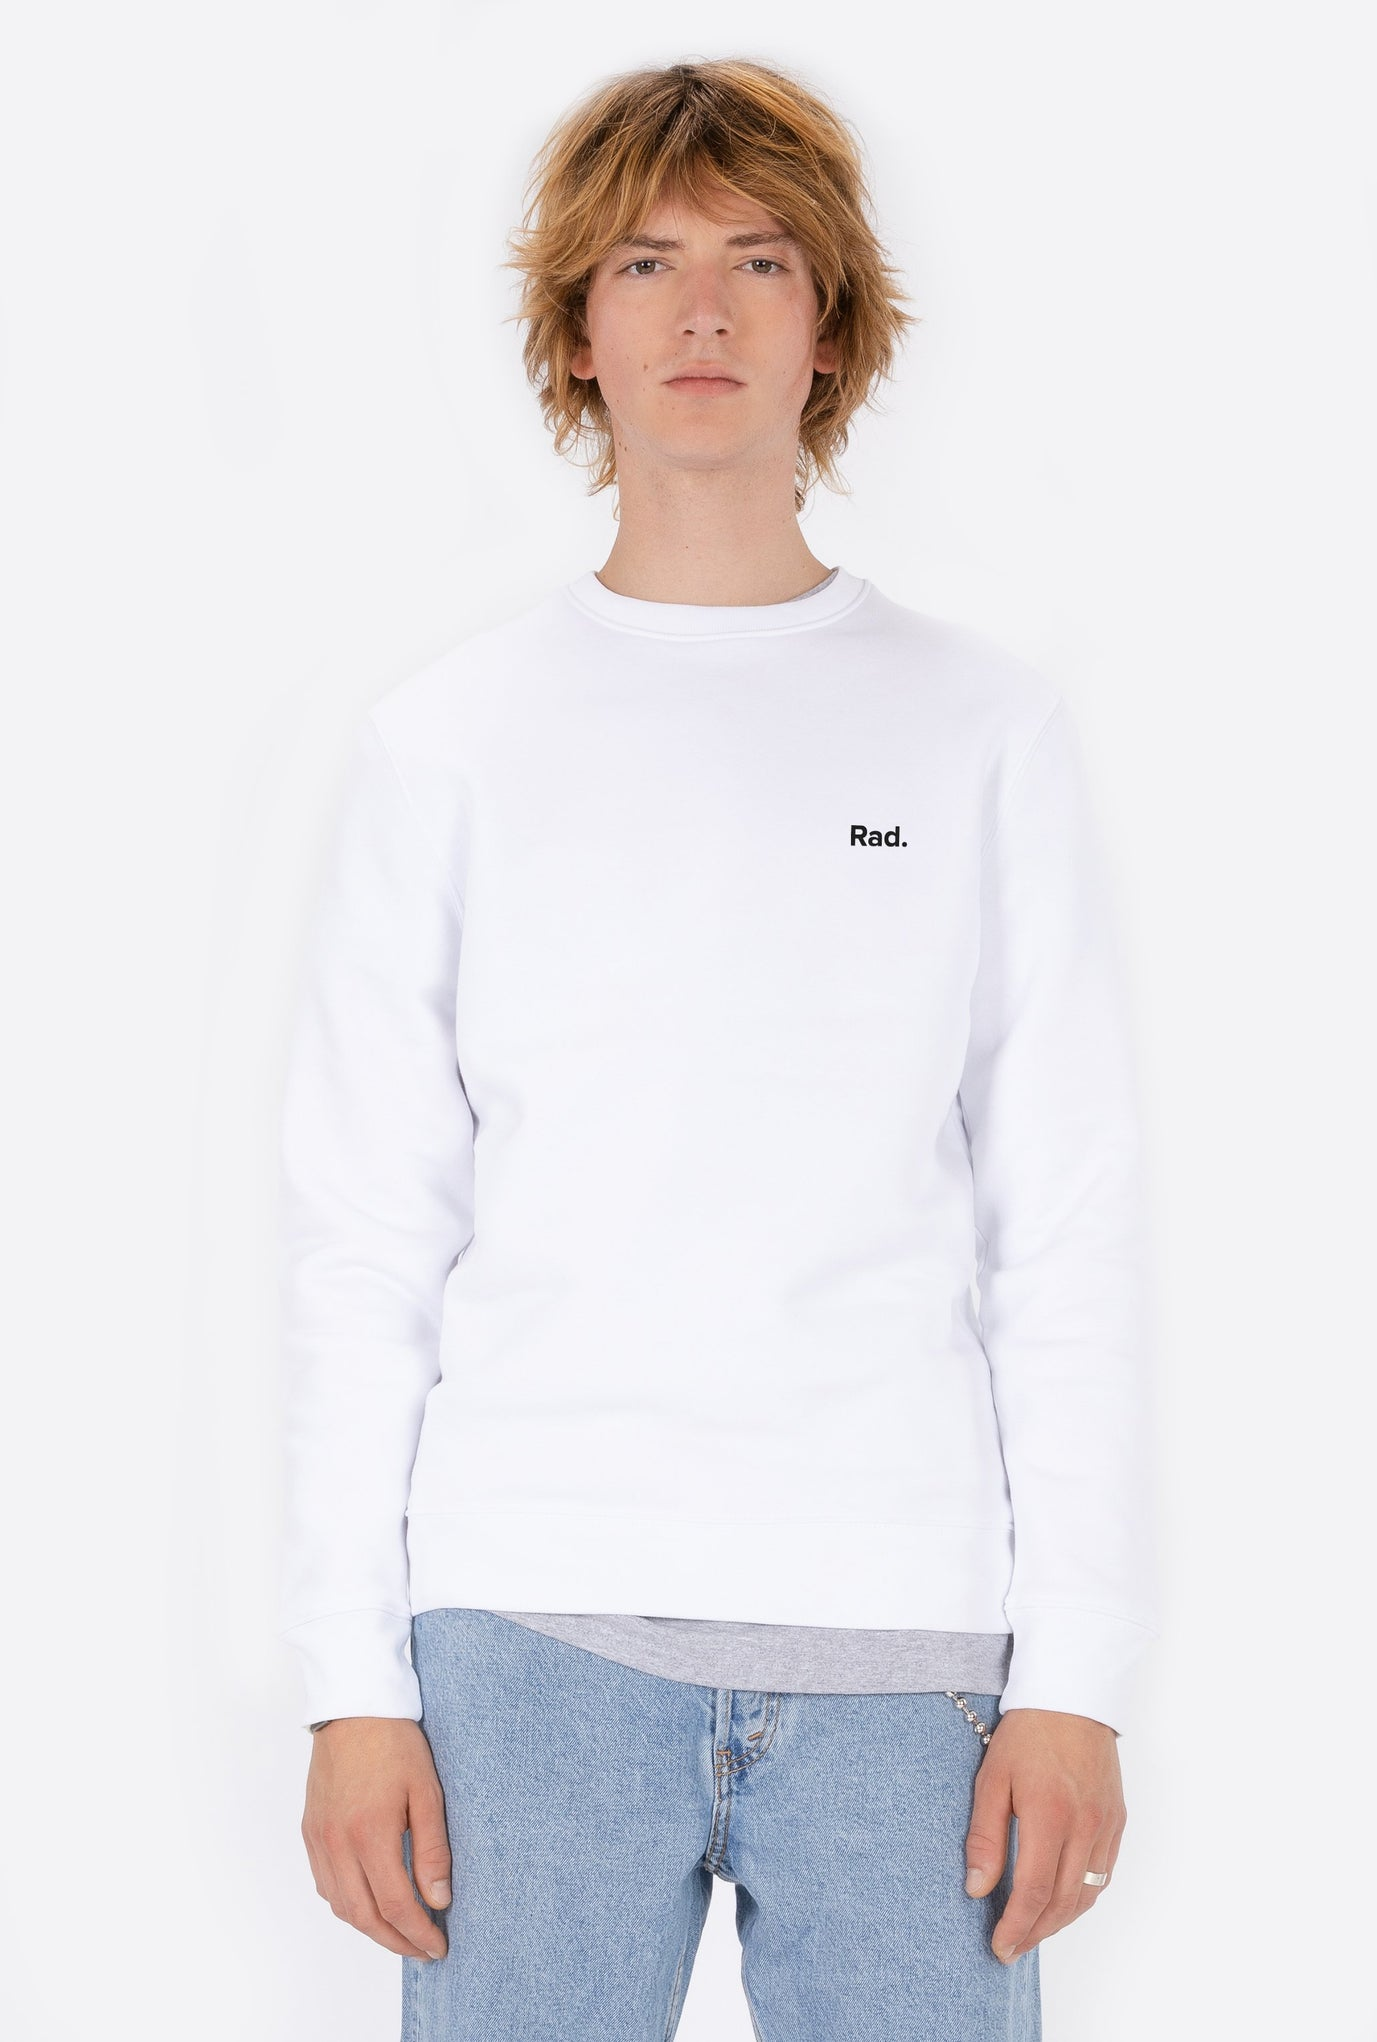 Crewneck Classic Rad - Embroidered